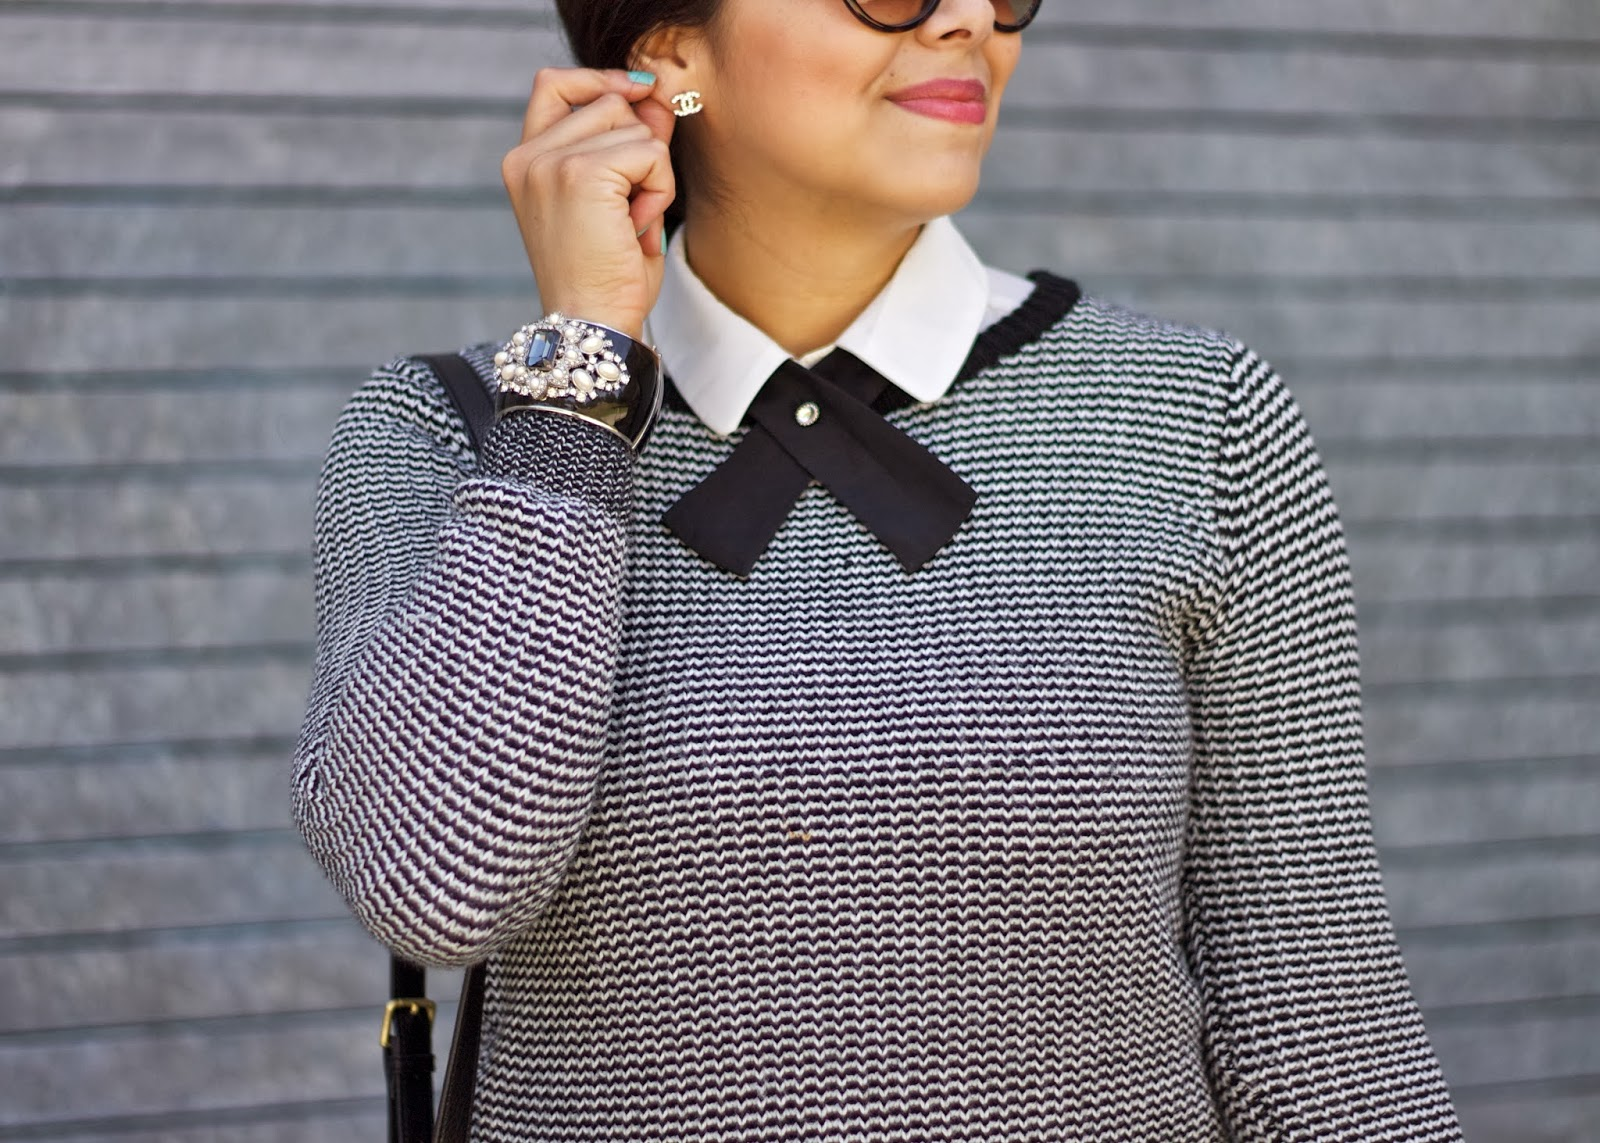 lilbitsofpau, chanel earrings, sweater weather in san diego, ann taylor glam cuff, black and white outfit